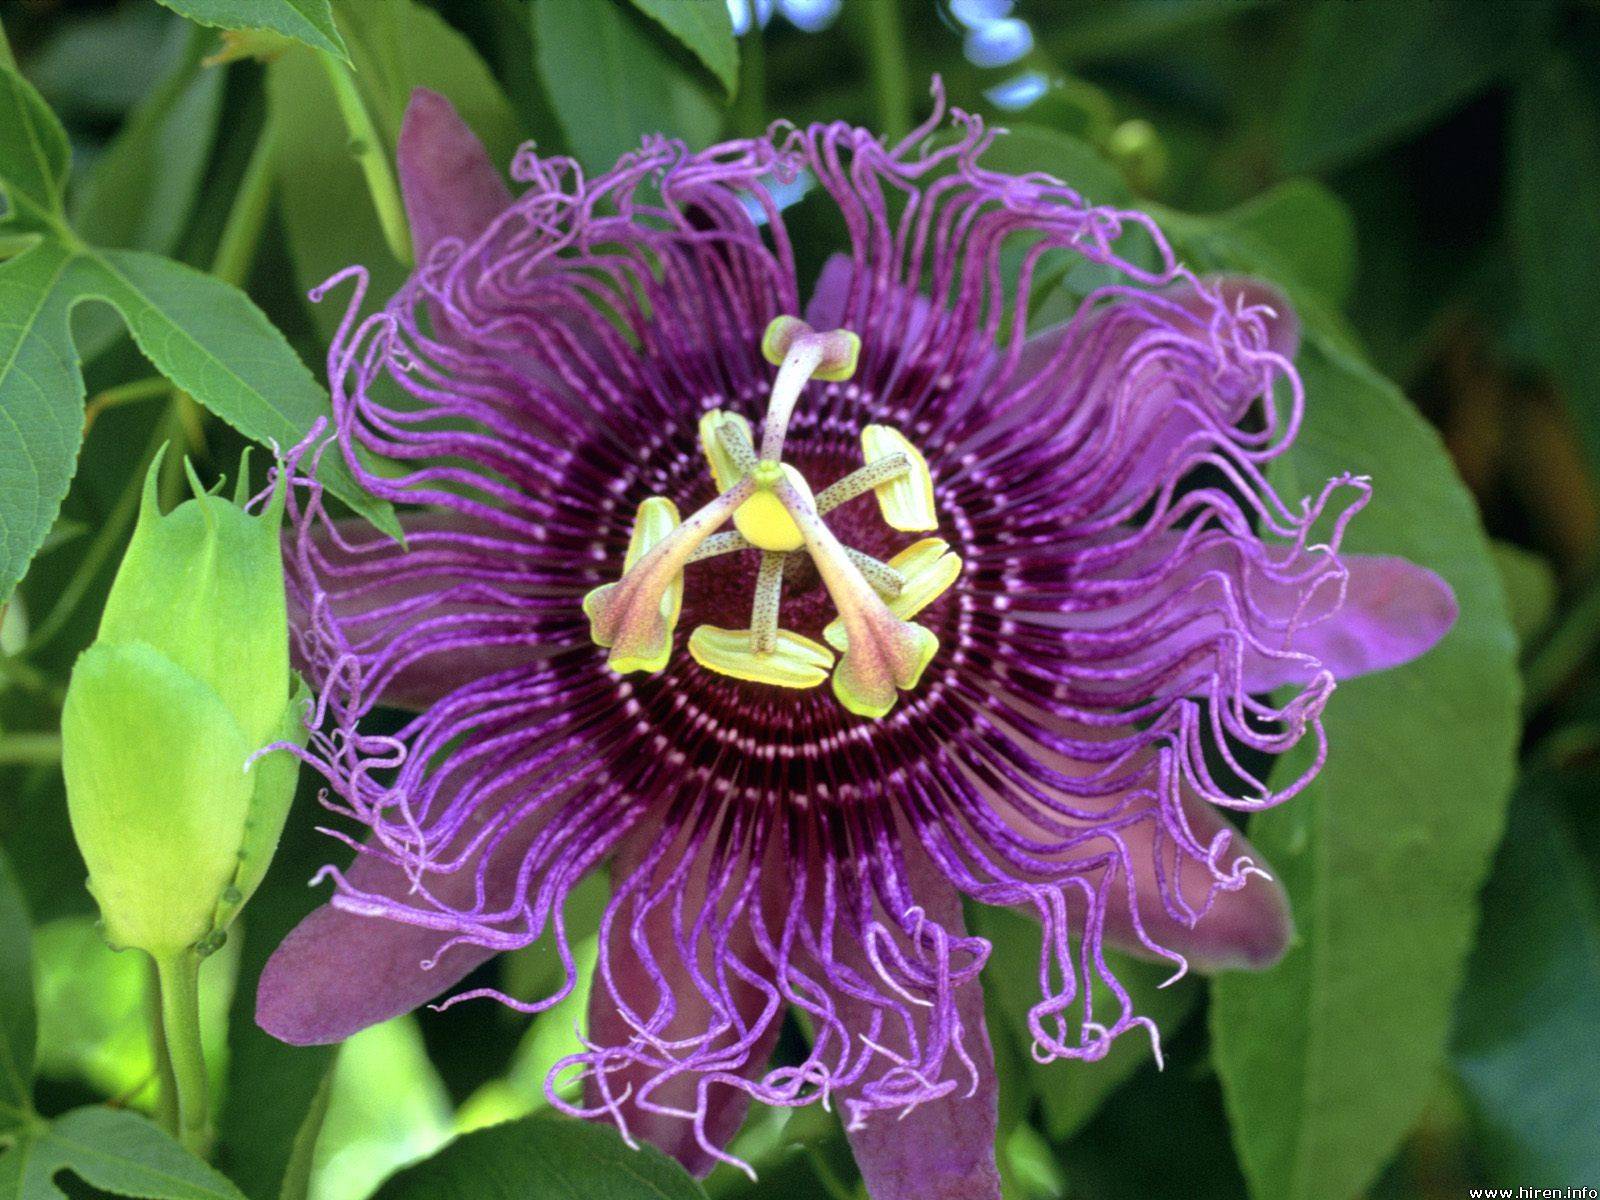 The Purple Passion Fruit Flower The Vine Grows Wild And Is Valued For Its Flavor And Aroma Which Helps Passion Fruit Flower Rainforest Flowers Passion Flower